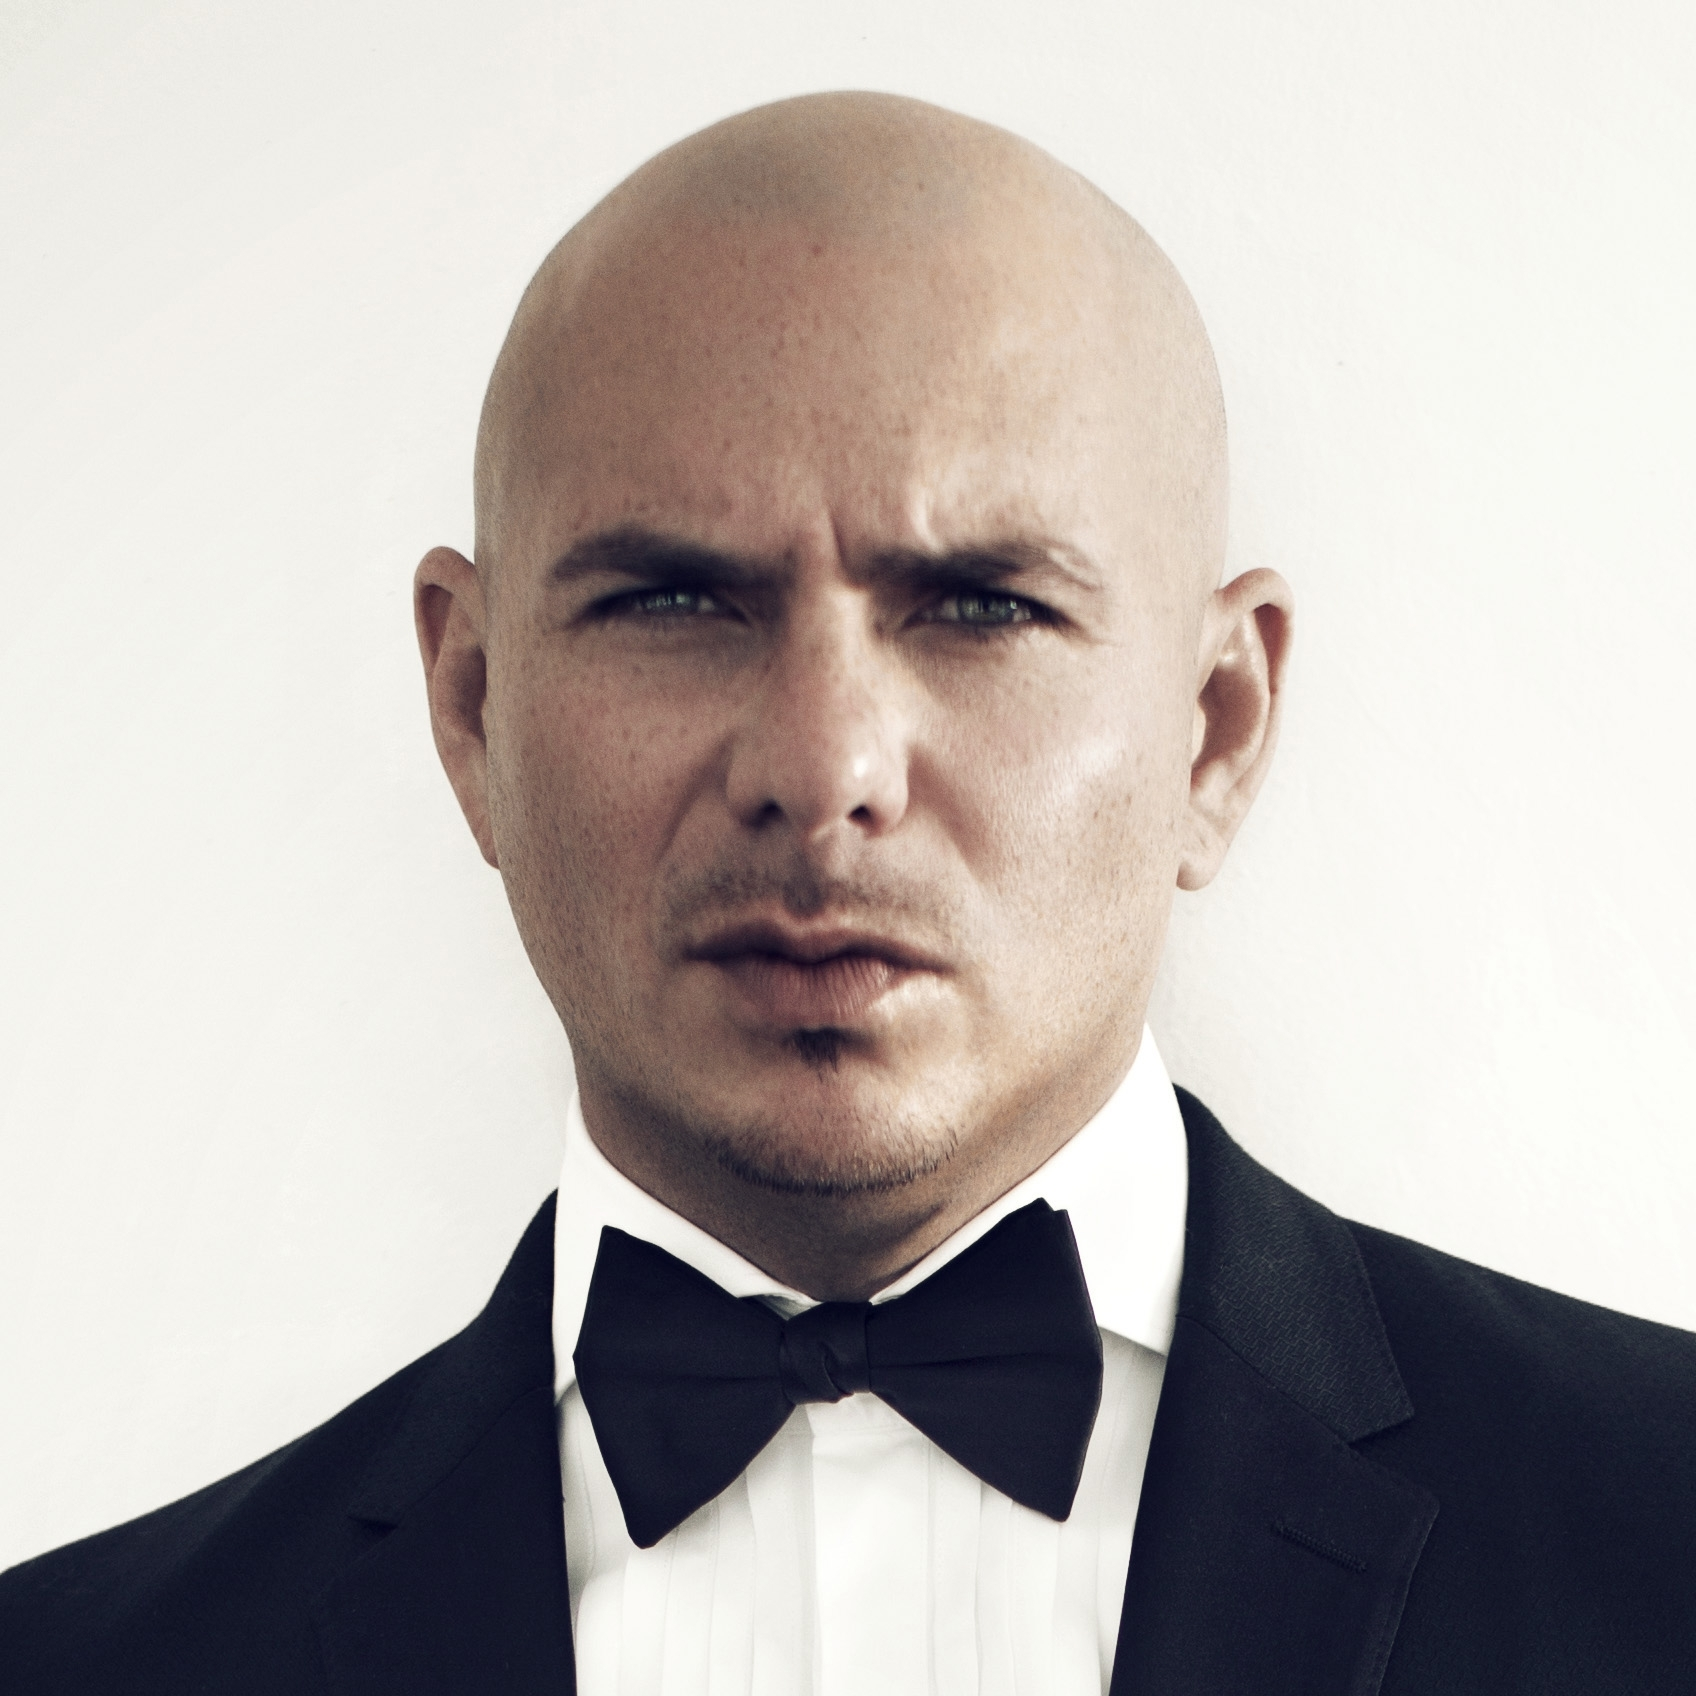 pitbull keynote speaker - wme speakers